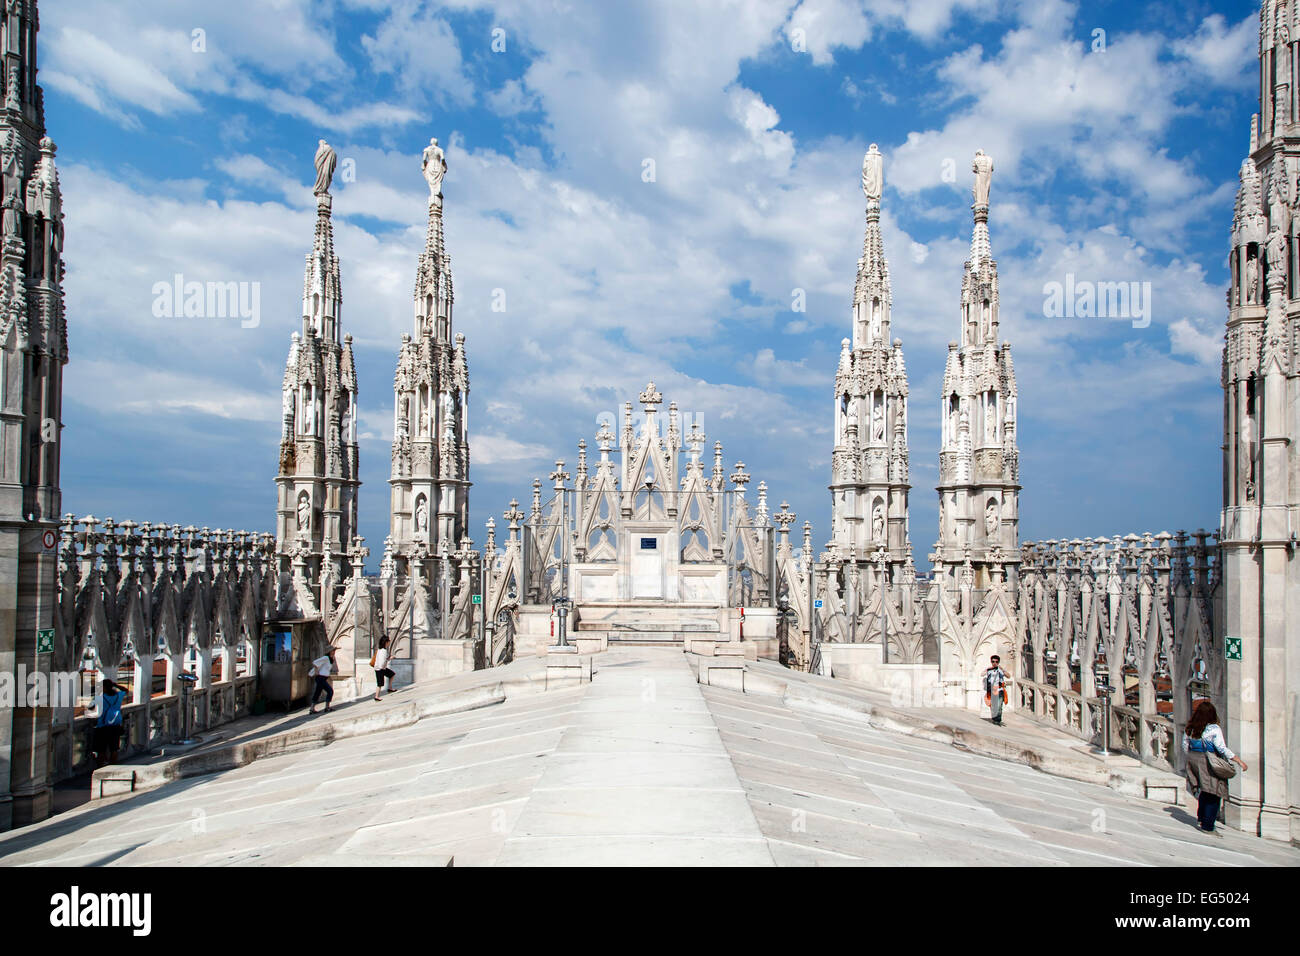 Spires and people on roof top, Milan Cathedral (Duomo di Milano), Milan, Italy - Stock Image